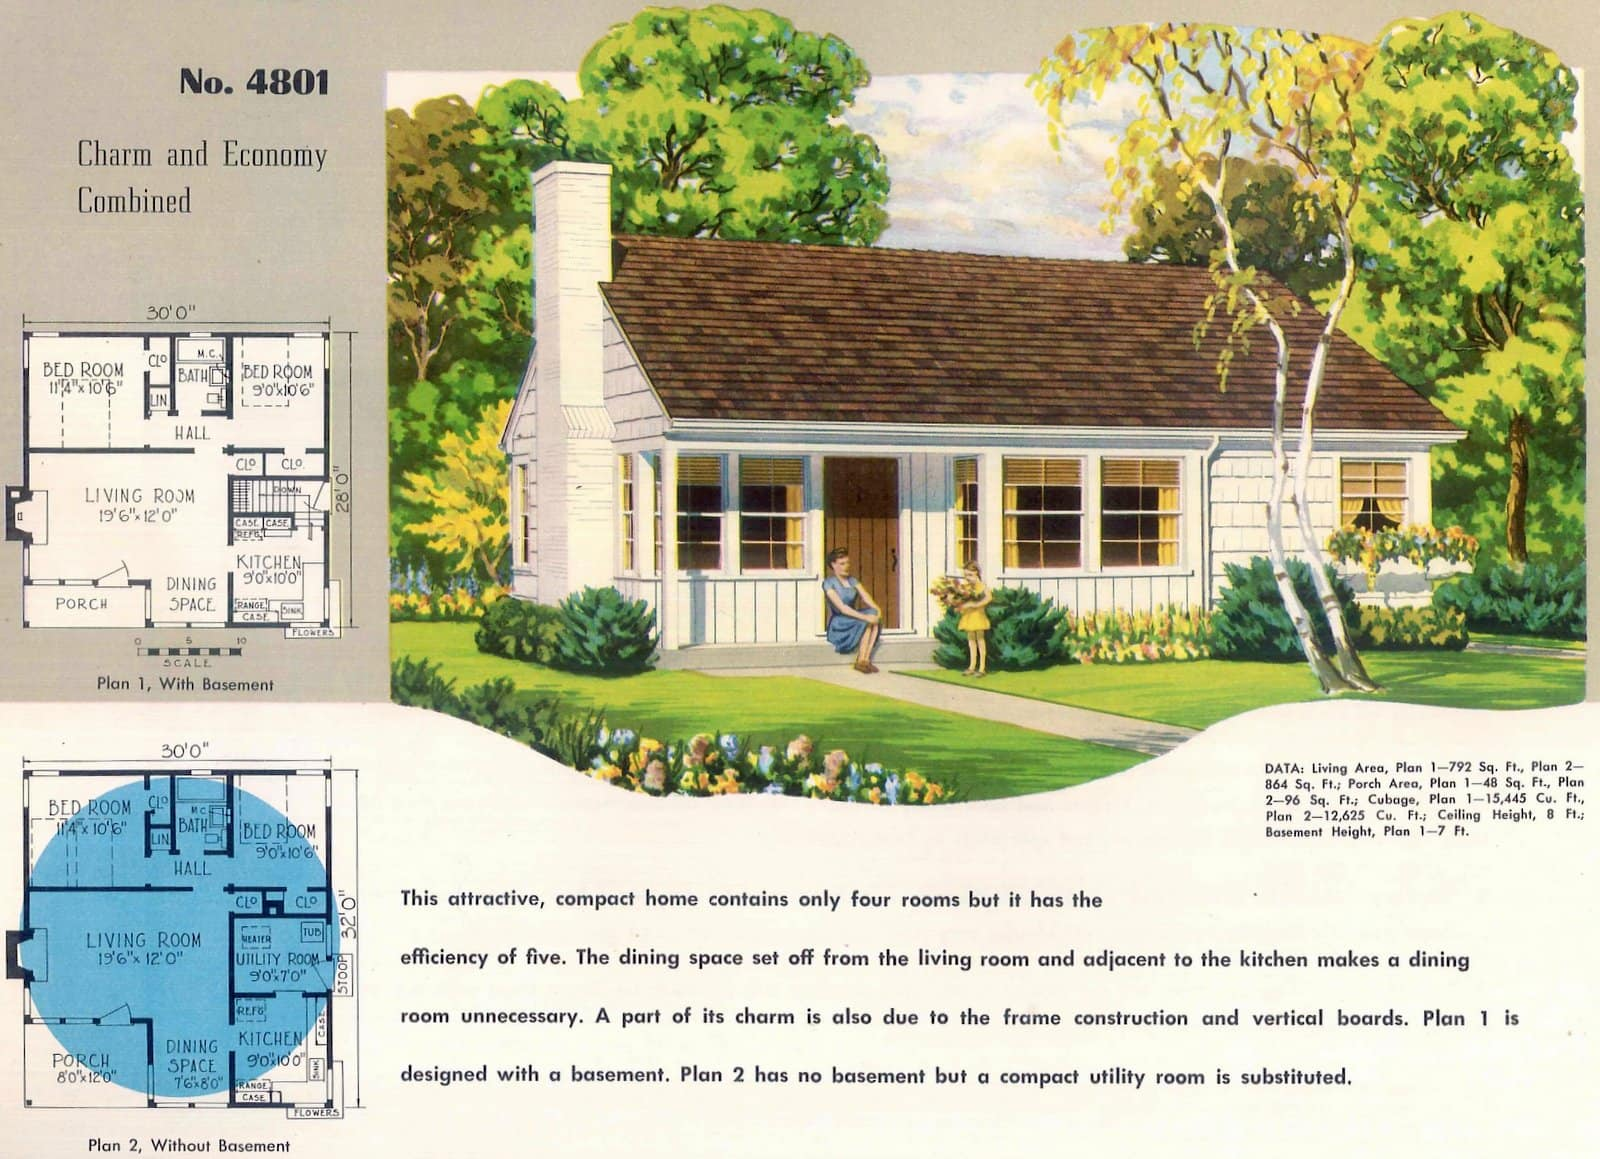 Vintage 50s small starter home designs from 1950 (2)